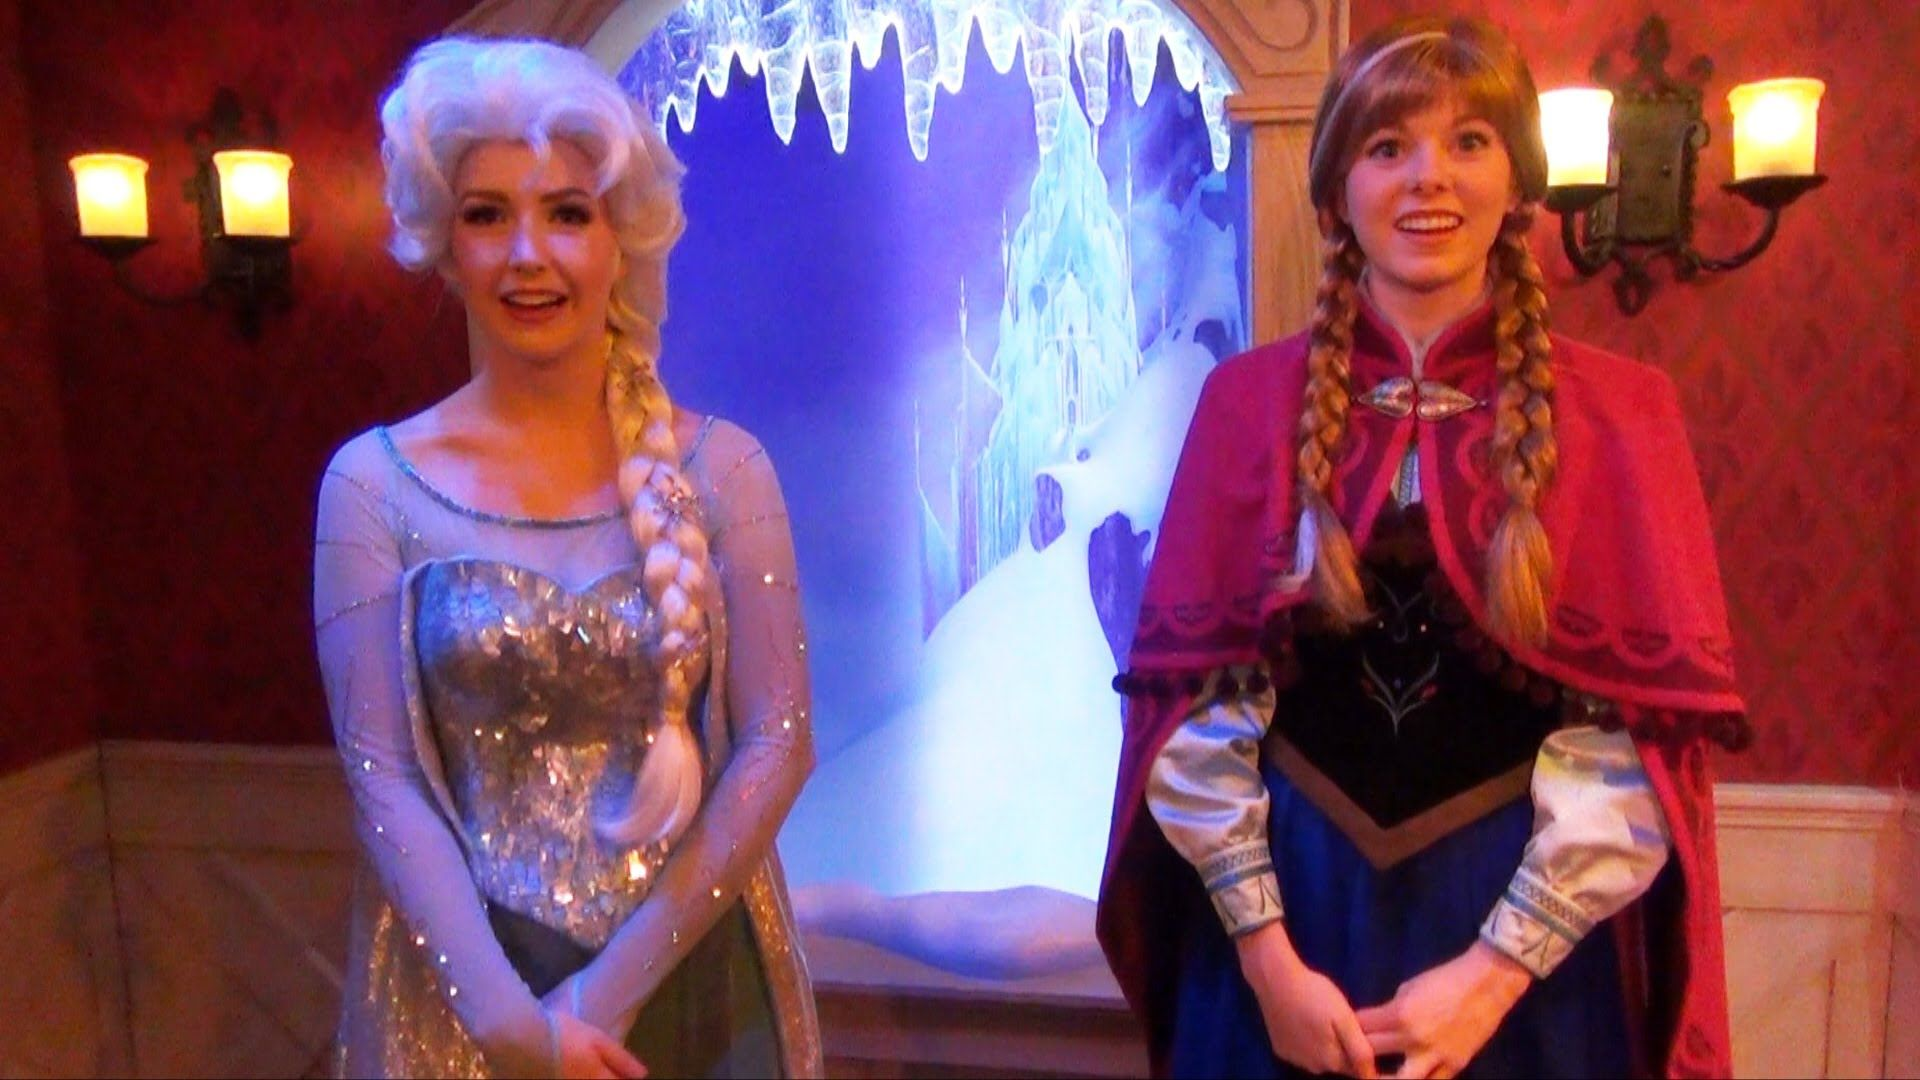 Anna and elsa meet greet w talking olaf at fantasyland frozen anna and elsa meet greet w talking olaf at fantasyland frozen royal r m4hsunfo